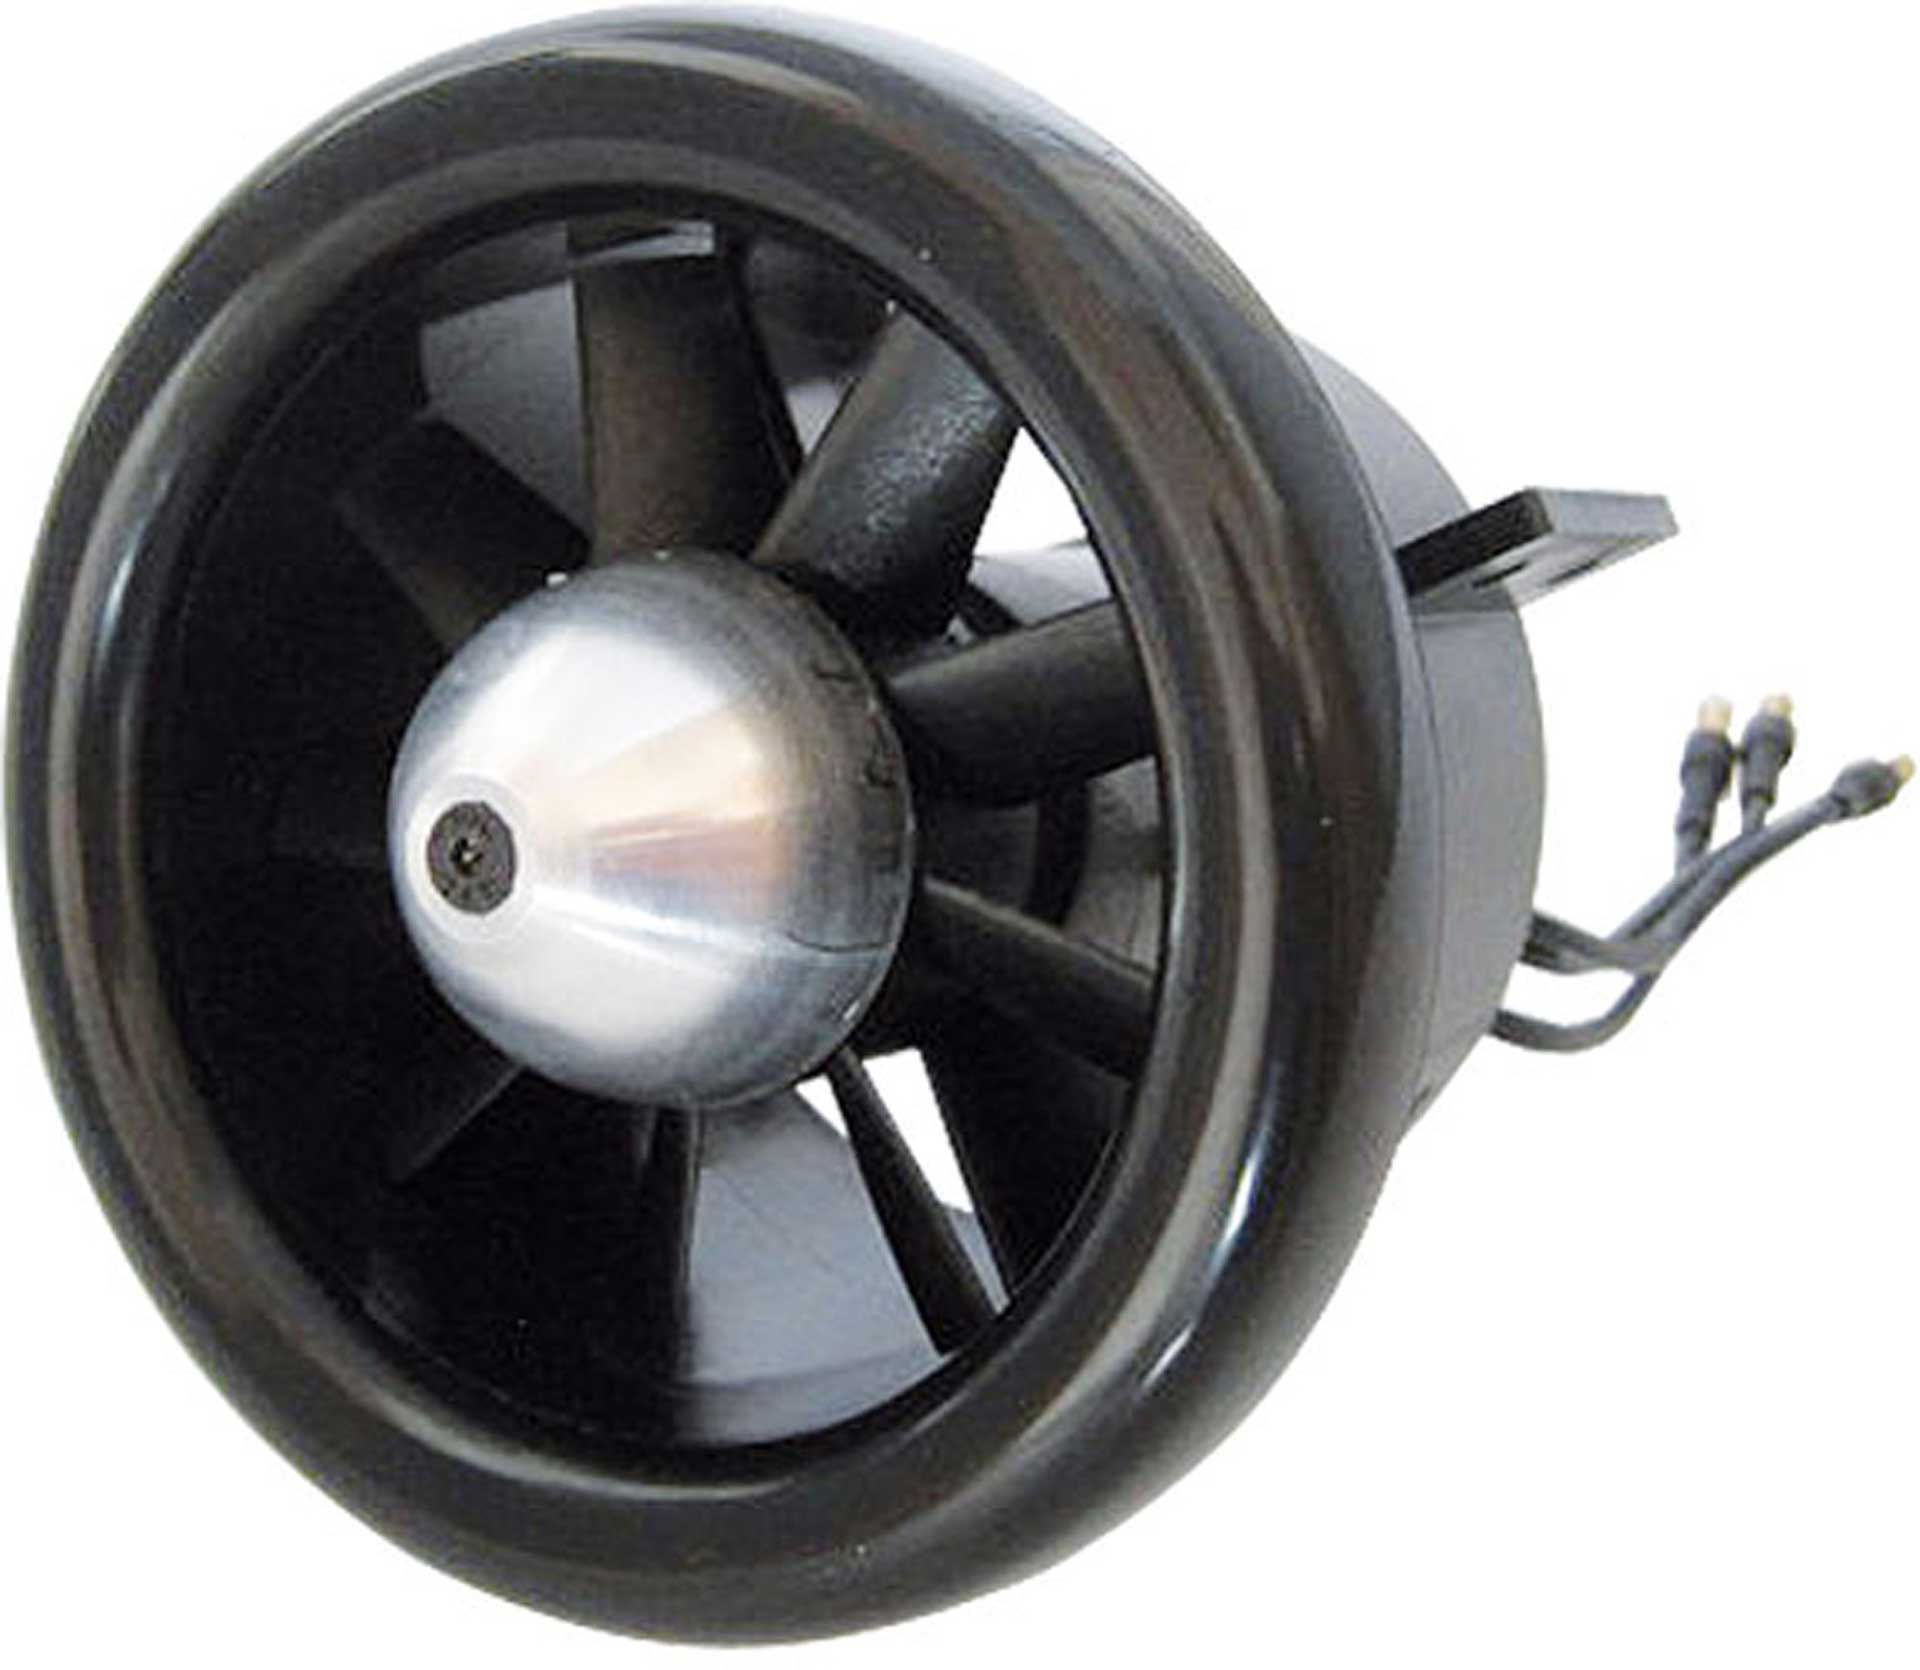 HACKER STREAM FAN 70/3500 DUCTED FAN WITH A30-14M-DF